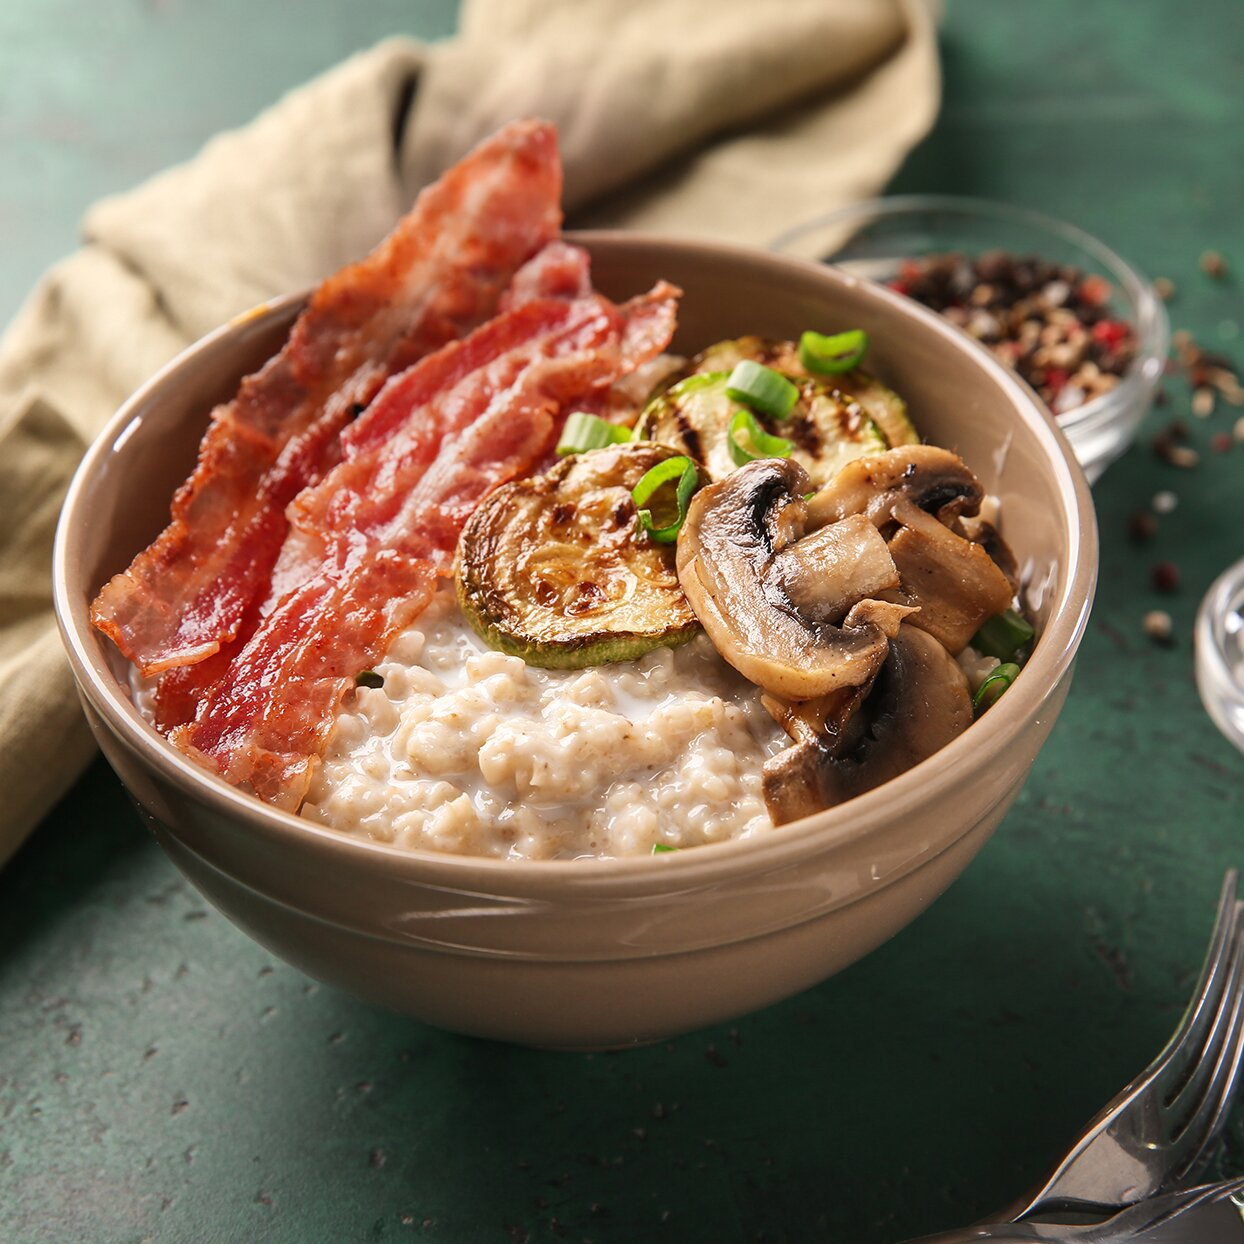 Oatmeal Recipes for Weight Loss | Shape